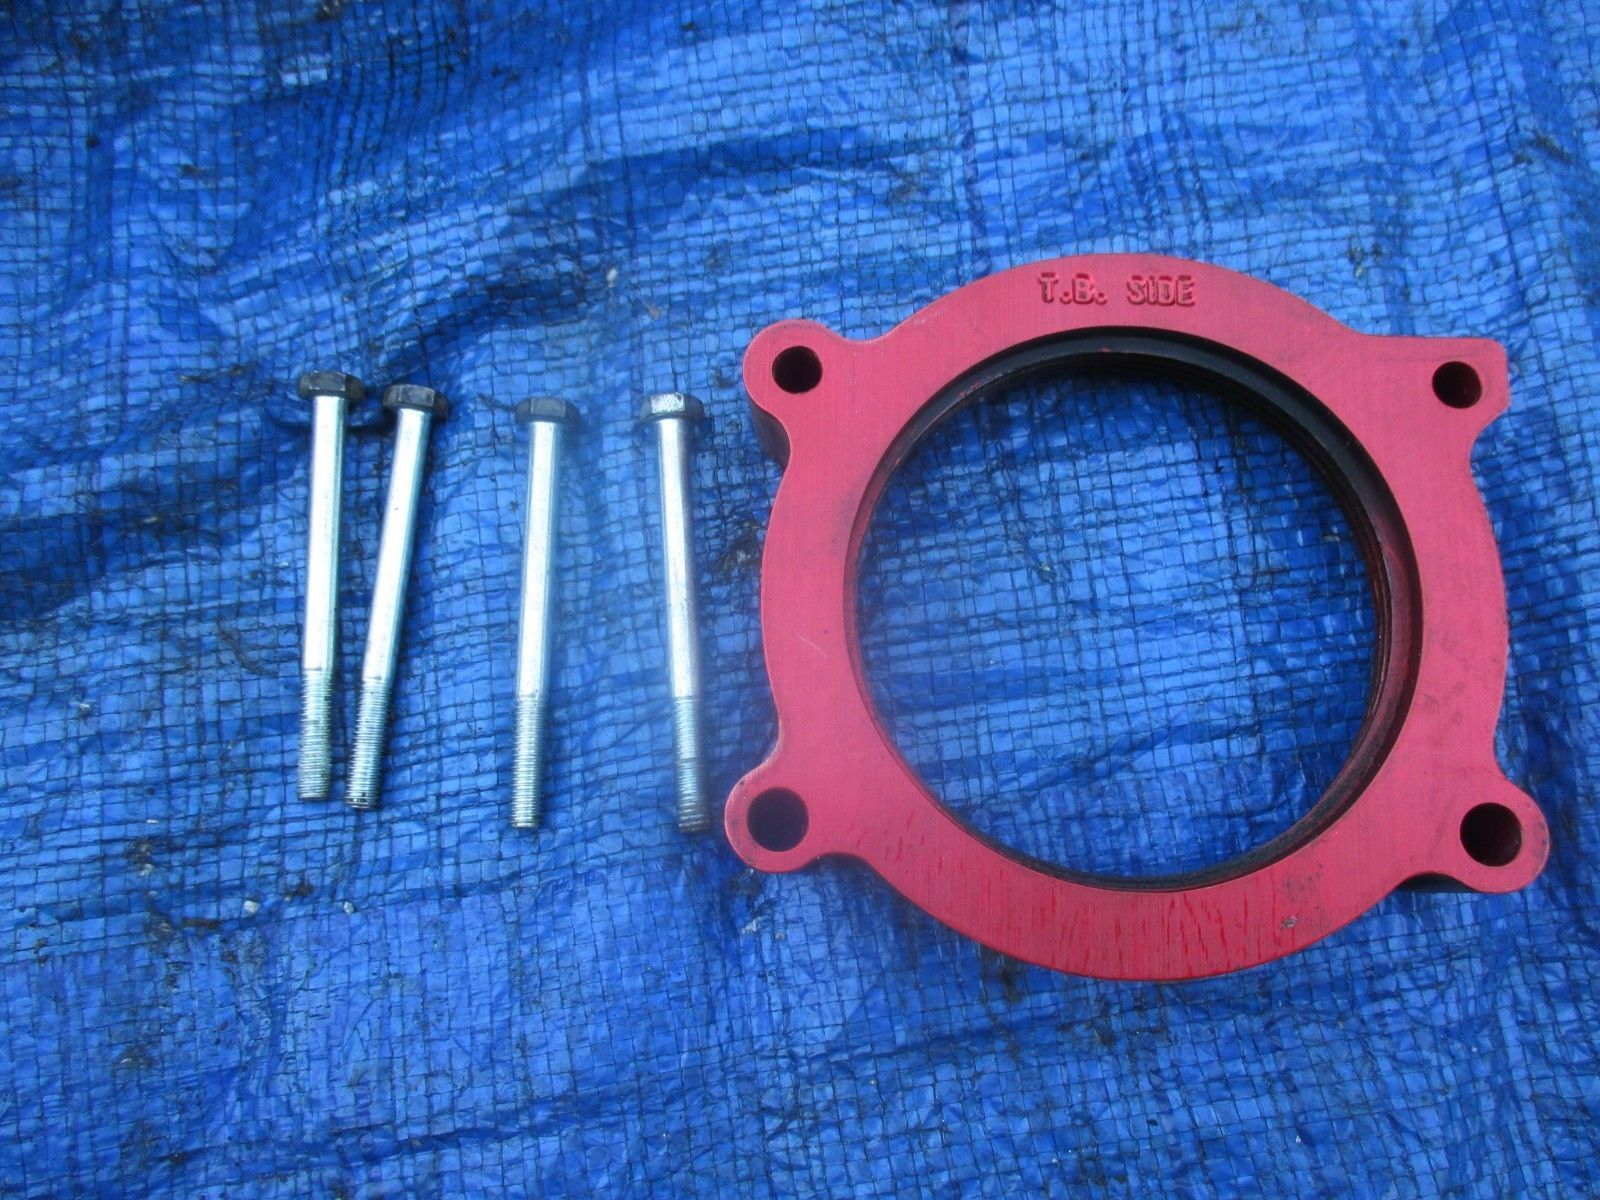 07-14 Chevy Silverado AIRAID Throttle Body Spacer 200-617 Sierra Poweraid 5.3